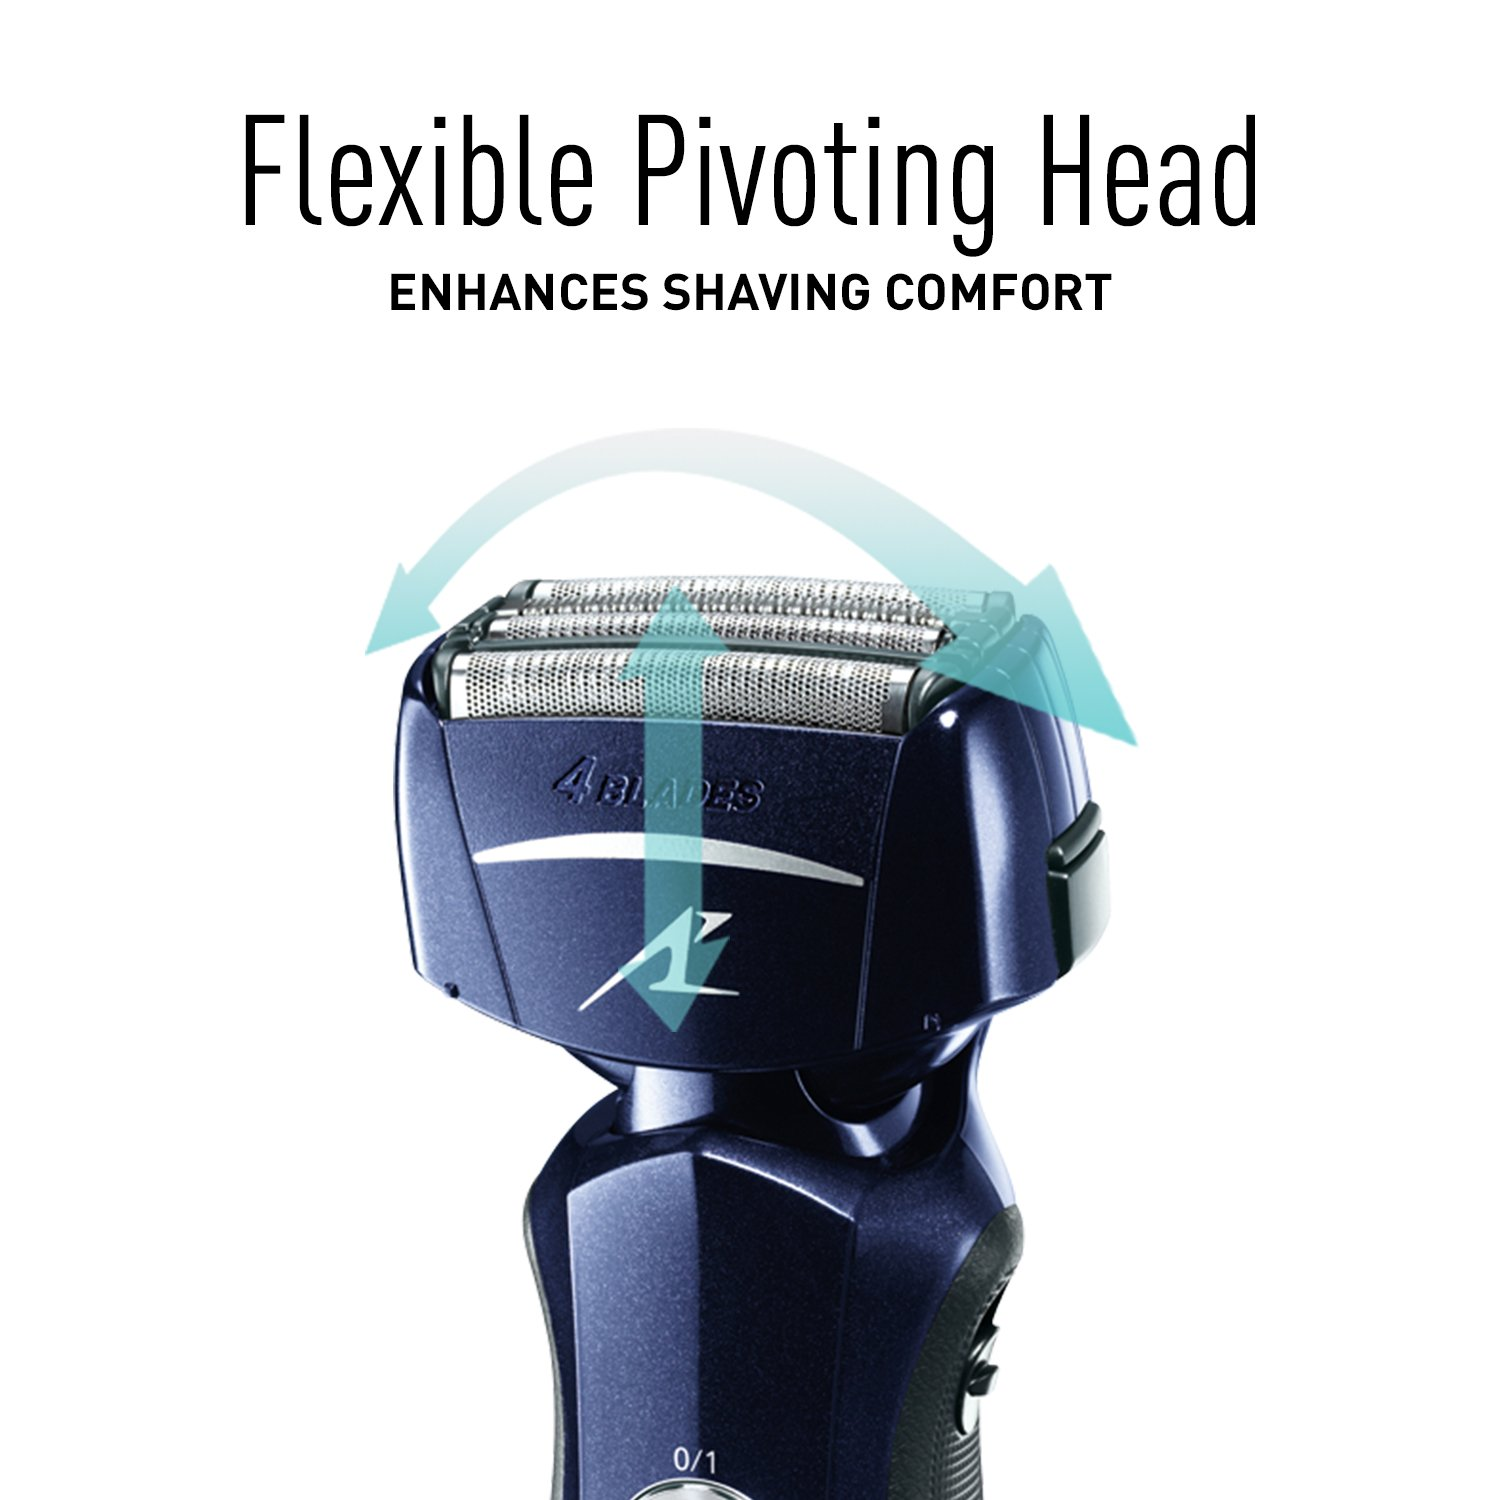 Panasonic Razor, ES-LF51-A, Men's Electric 4-Blade Cordless Shaver, Wet/Dry with Flexible Pivoting Head by Panasonic (Image #4)